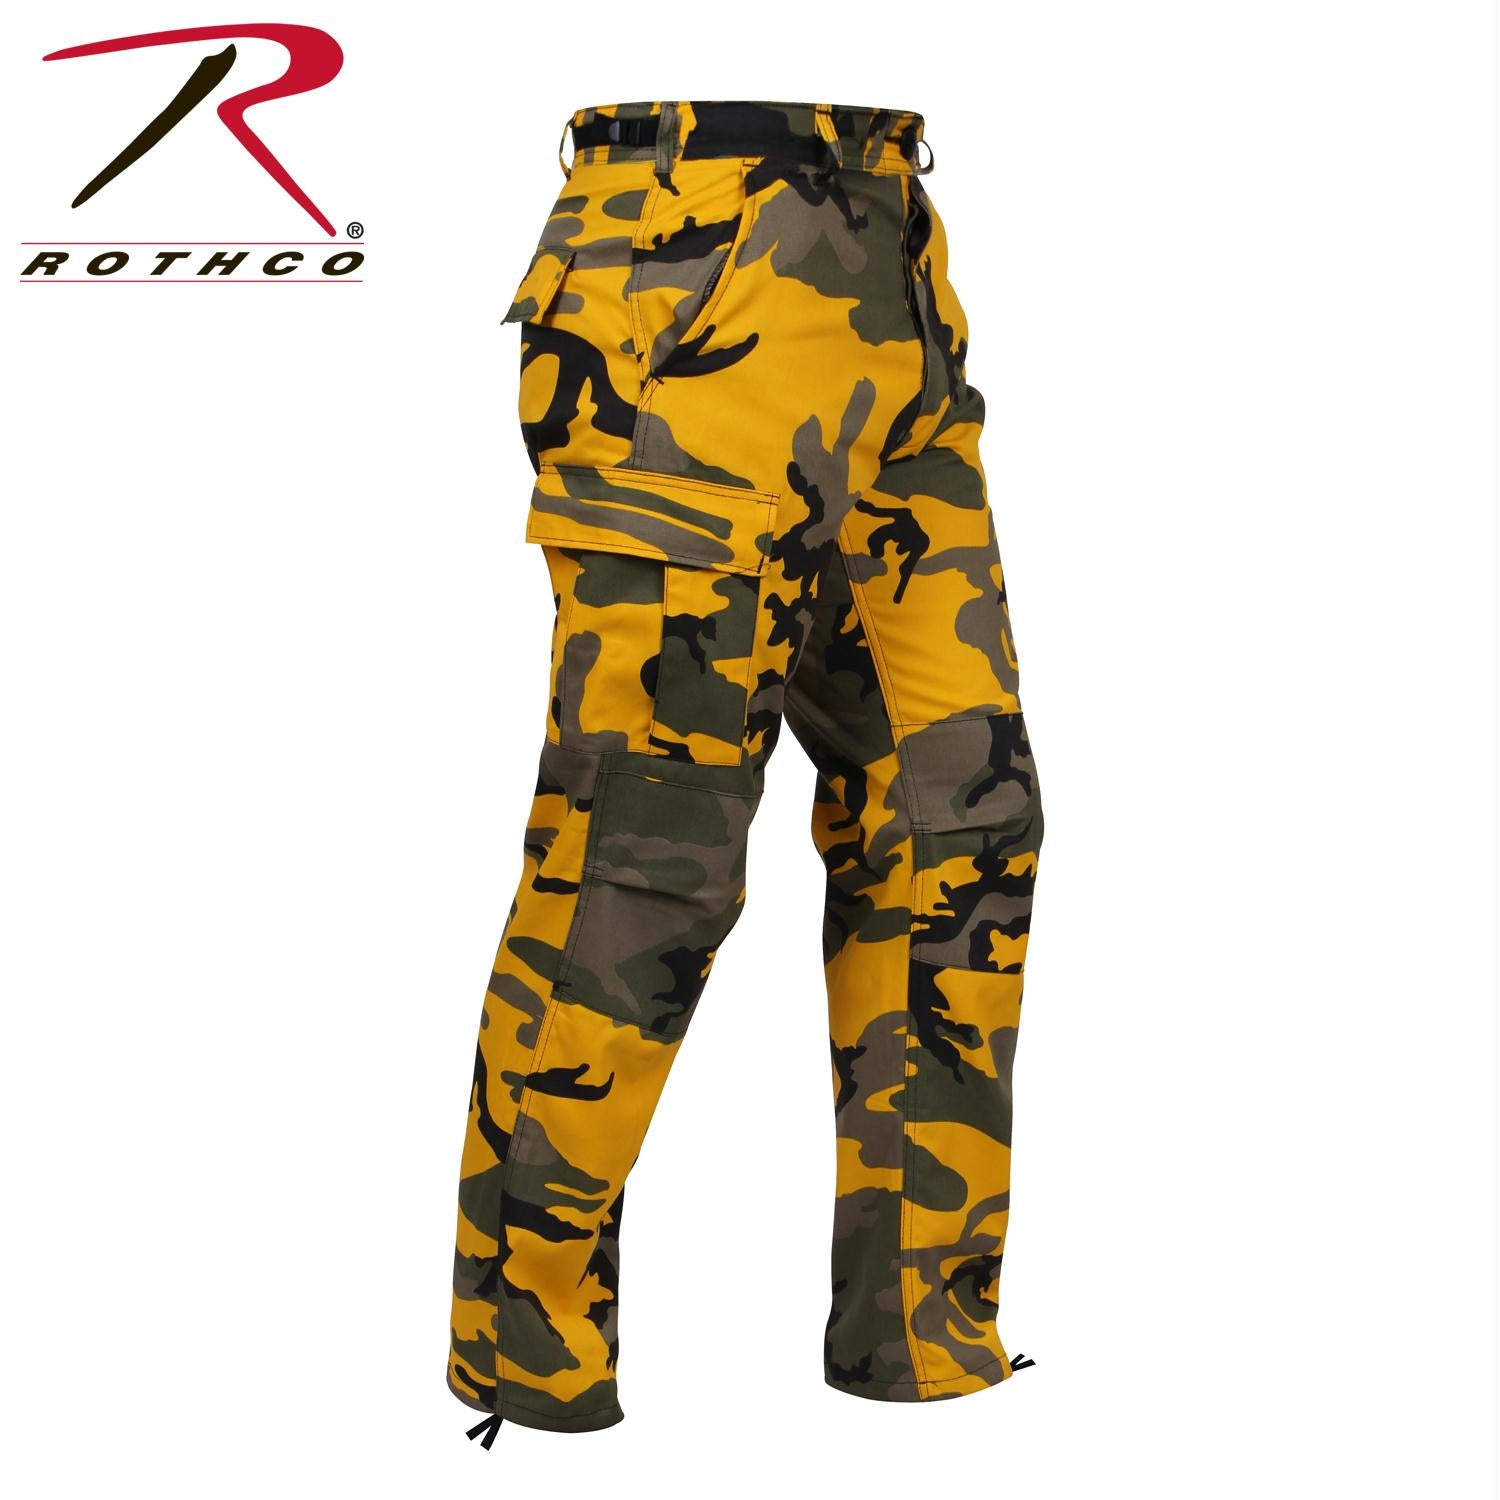 Rothco Color Camo Tactical BDU Pant - Stinger Yellow Camo / 2XL